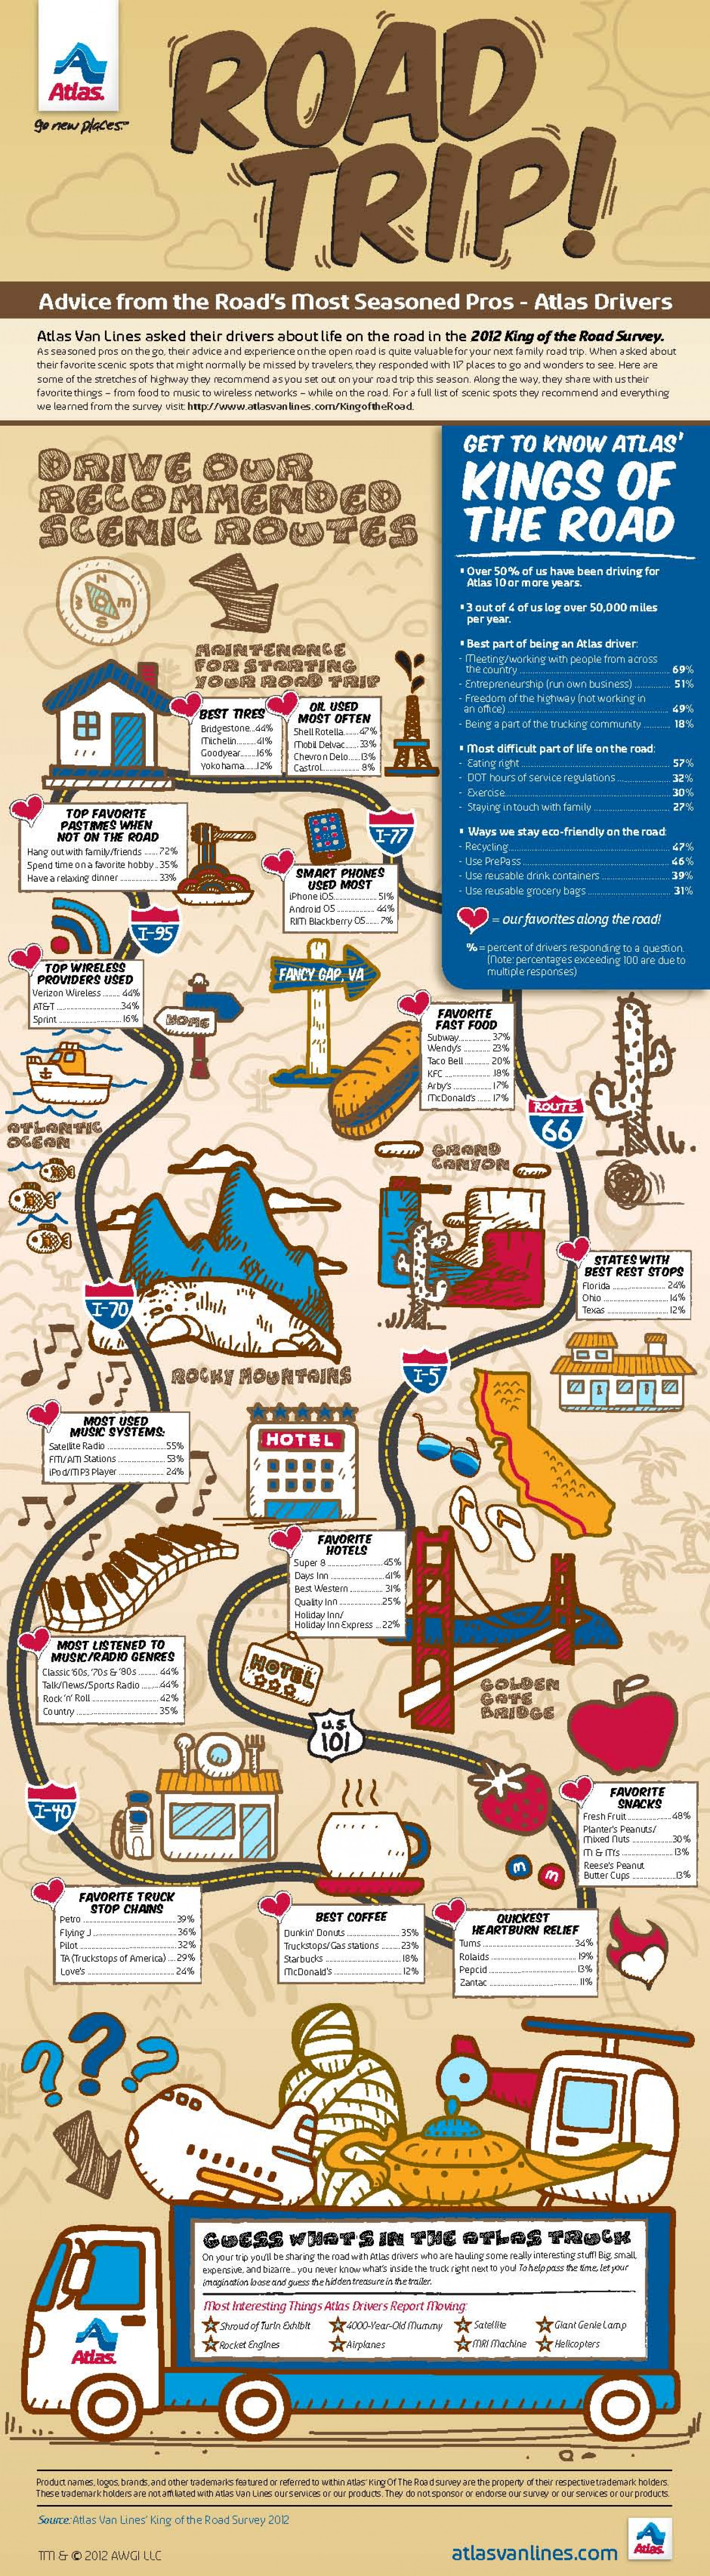 Road Trip Tips - Advice from the Road's Most Seasoned Pros Infographic